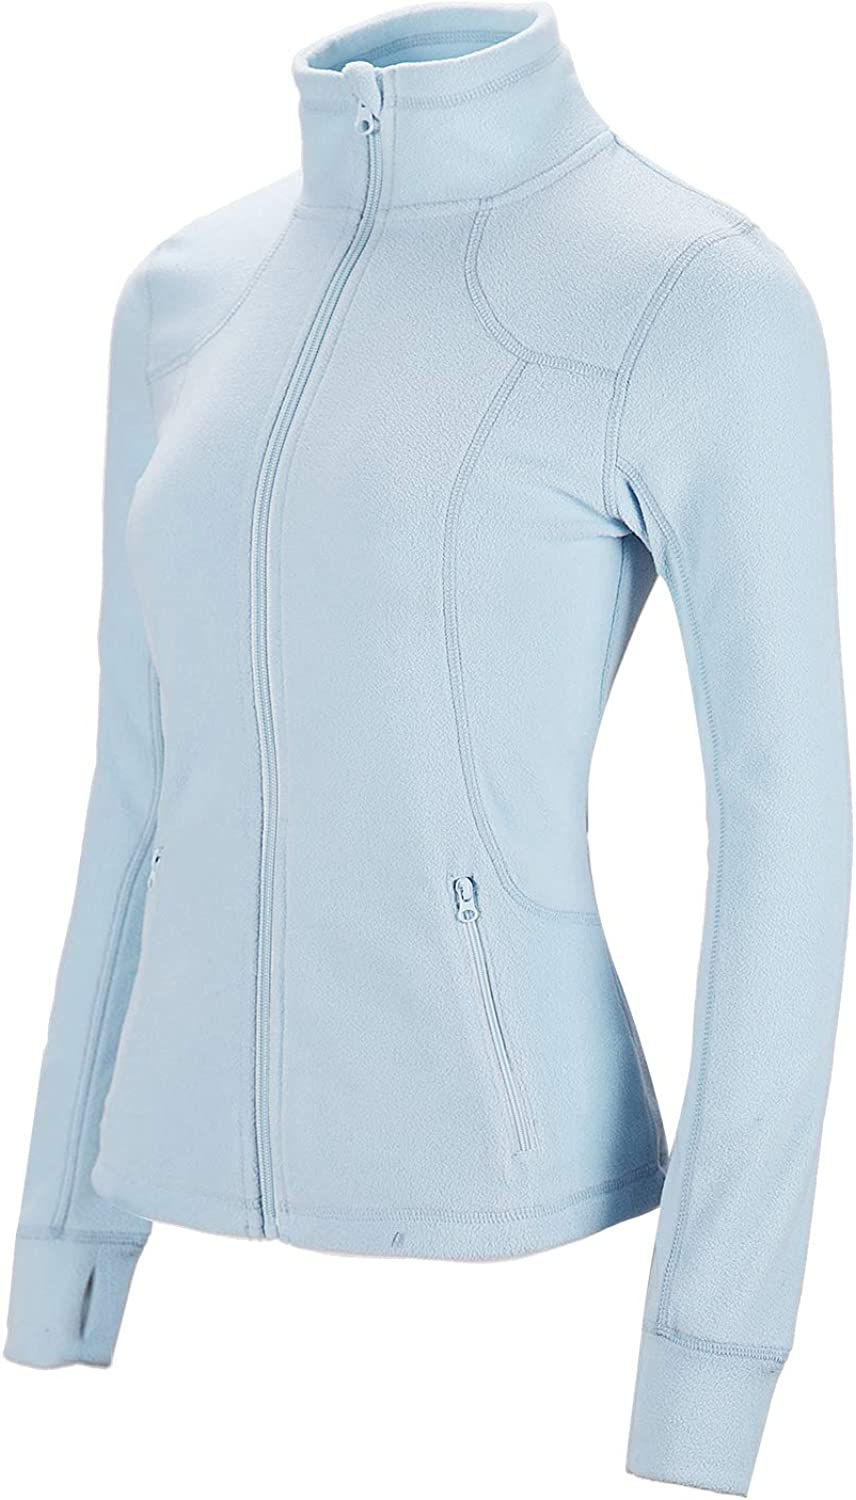 Dolcevida Womens Lightweight Soft Fleece Athletic Running Track Jackets Slim Fit Workout Jacket with Thumb Holes